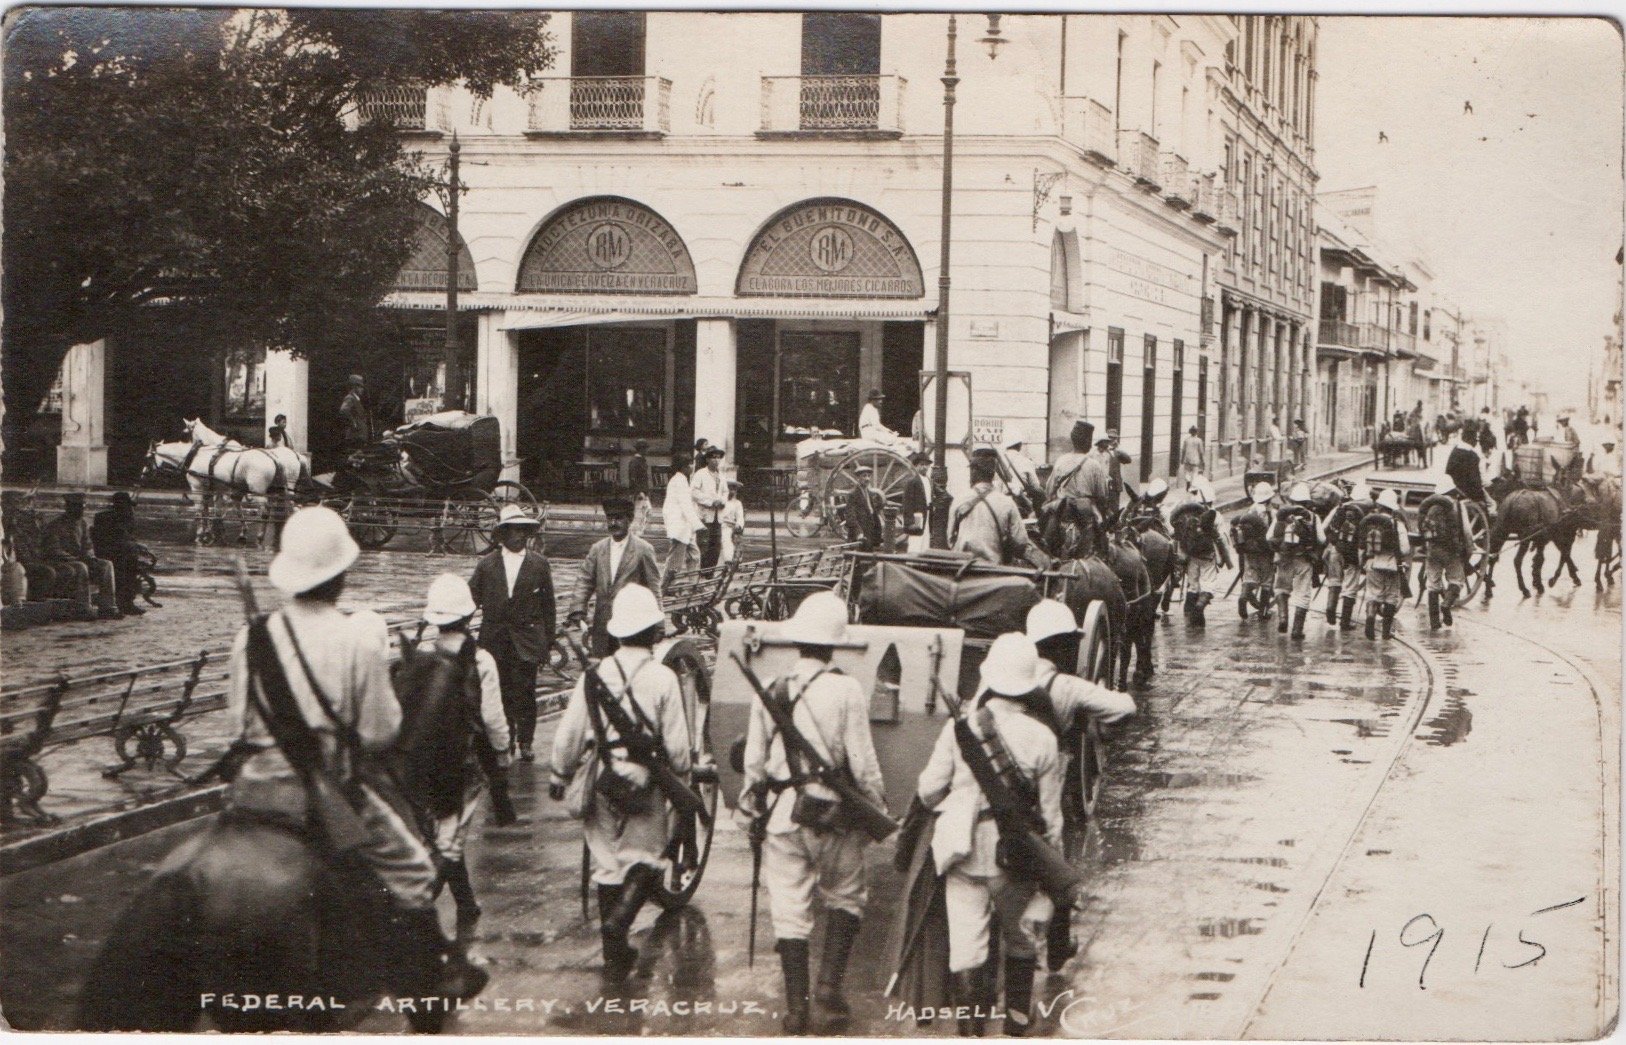 A rather motley group of federal troops parade through Vera Cruz.